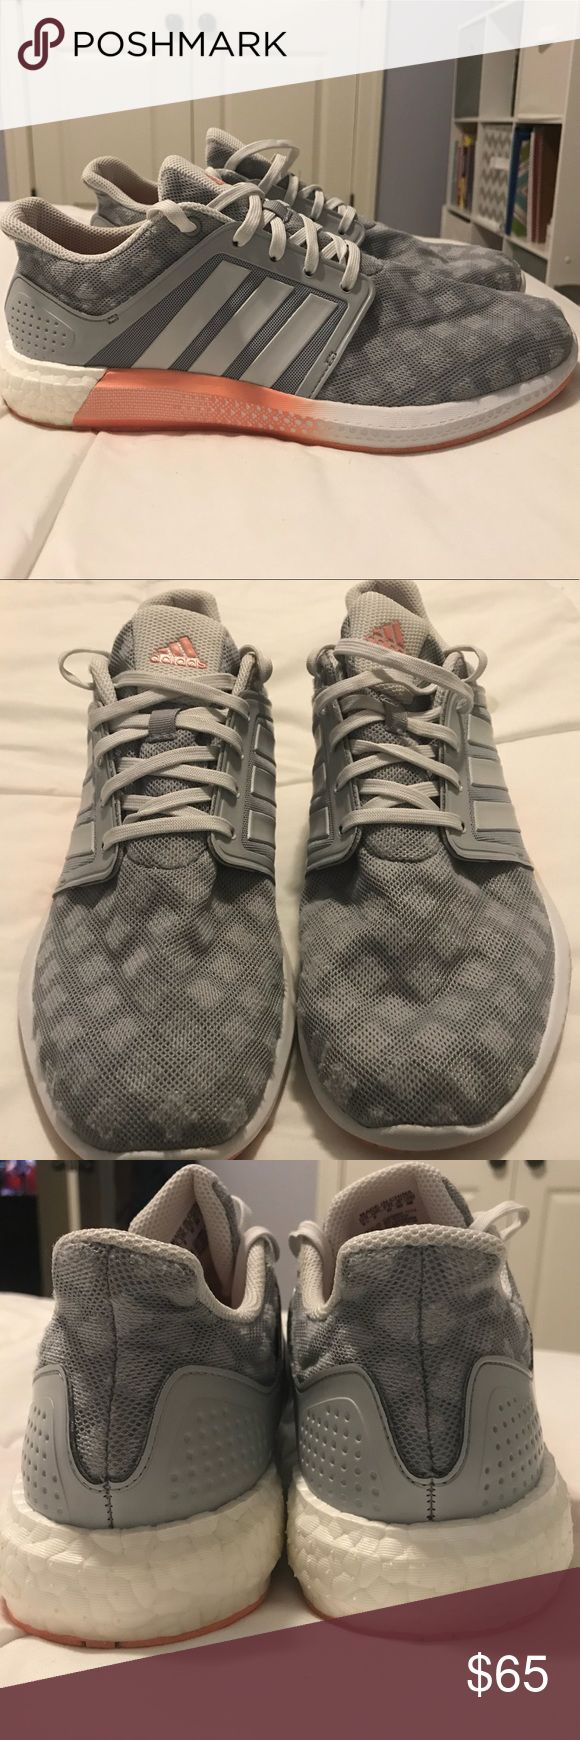 Adidas originals Women's Boost Shoes Super comfortable, casual Adidas shoes. Very stylish. Used but not abused! Worn a handful of times and are in very good condition. Grey with coral and white. Size 9.5 women's. Open to offers:) adidas Shoes Sneakers